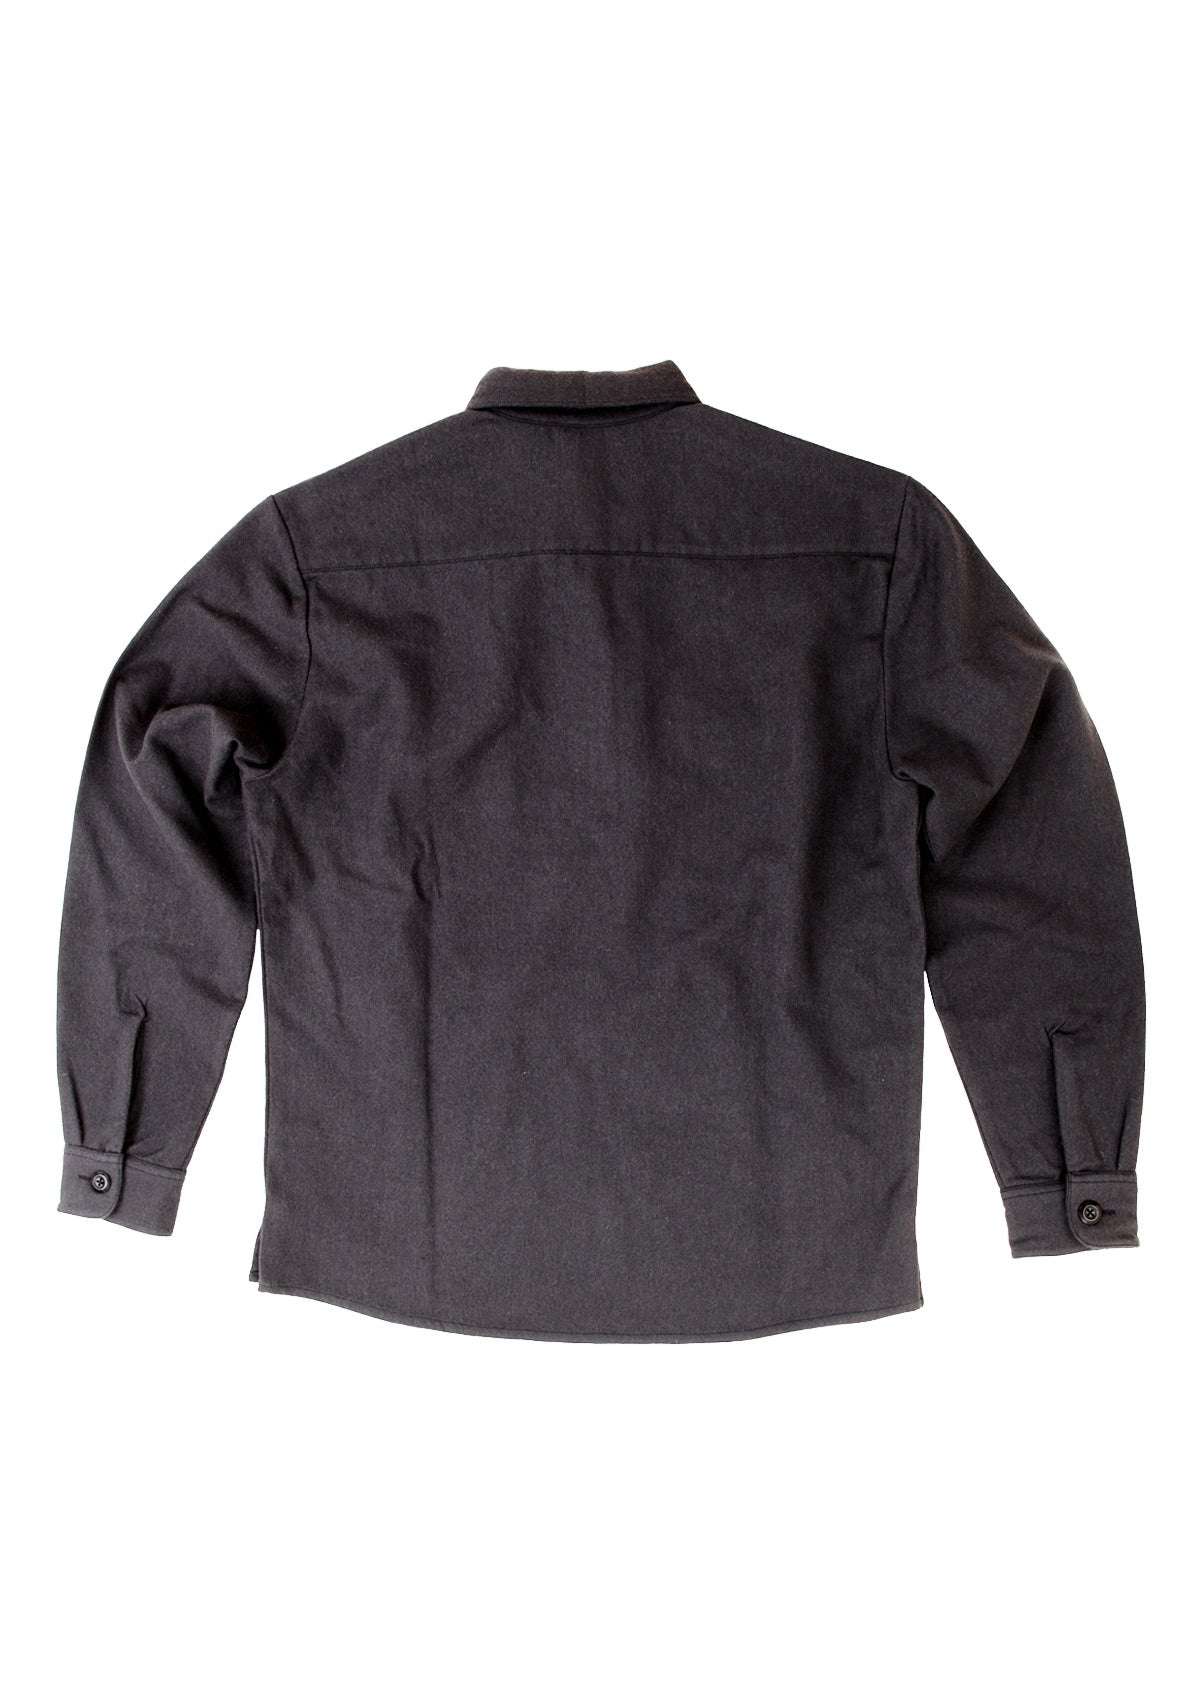 needessentials wool insulator pullover shirt black travel